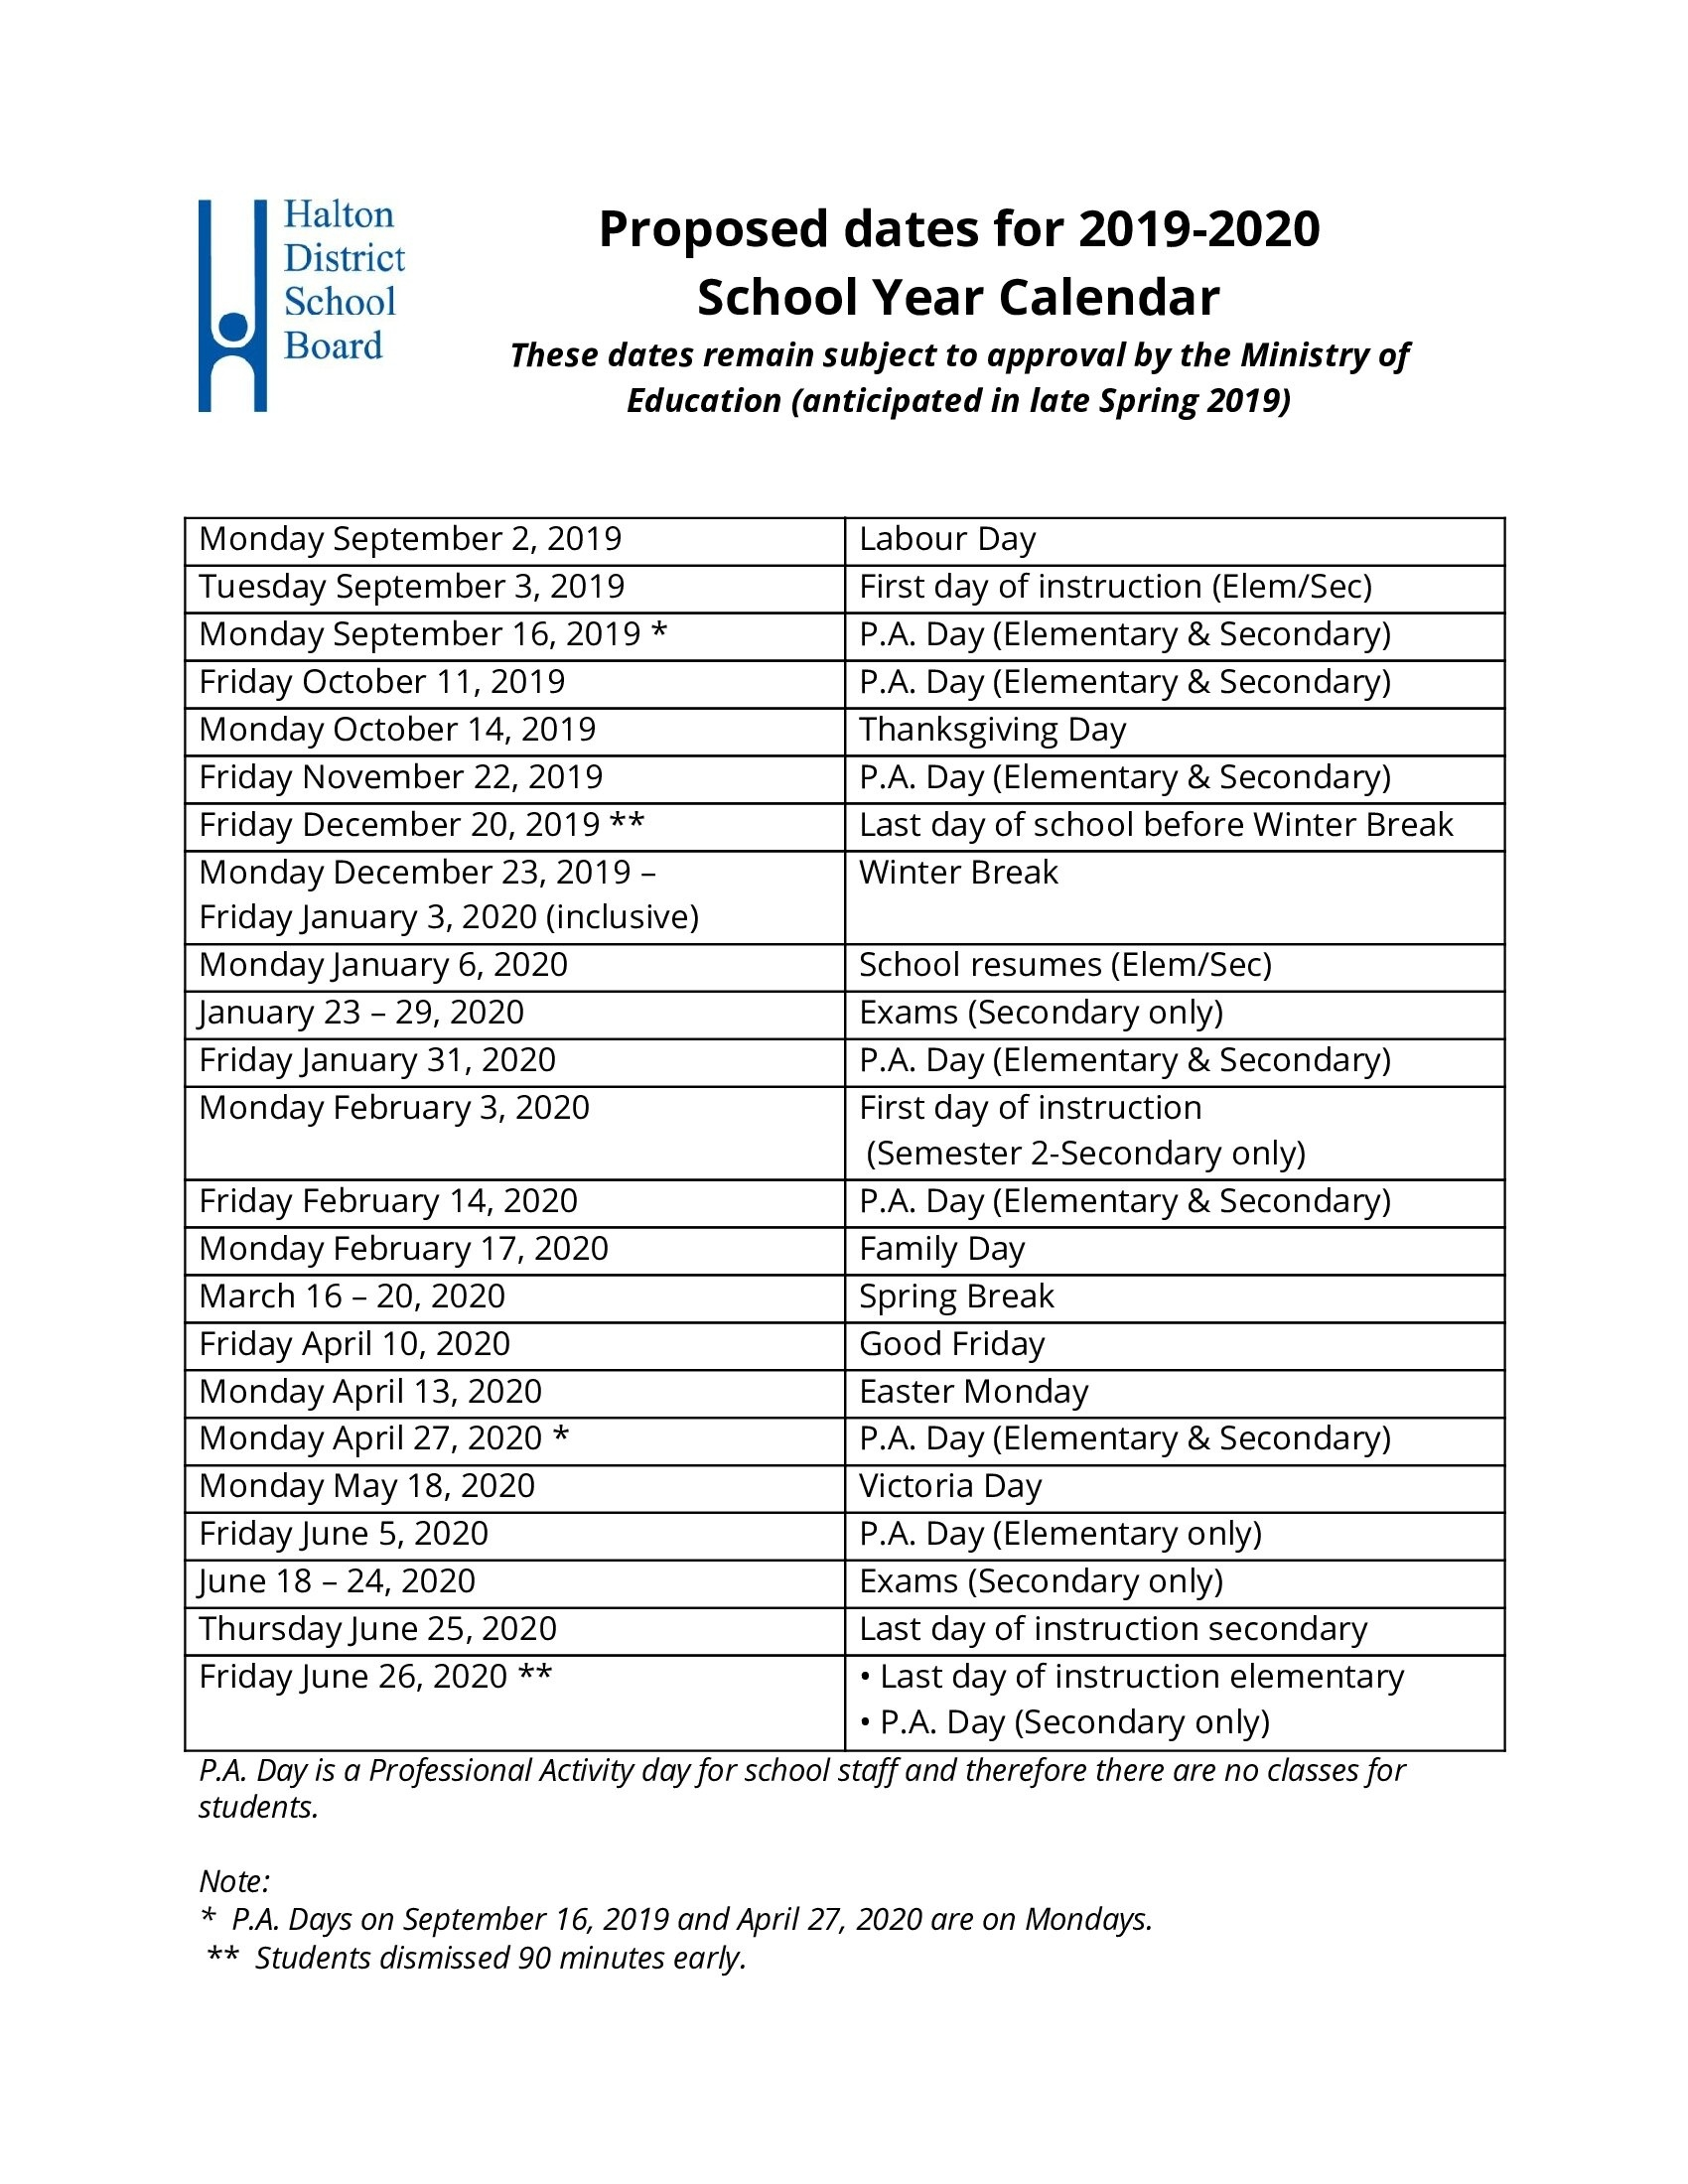 Proposed 2019-2020 School Year Calendar Approved By Board Of Trustees_School Year Calendar Hdsb